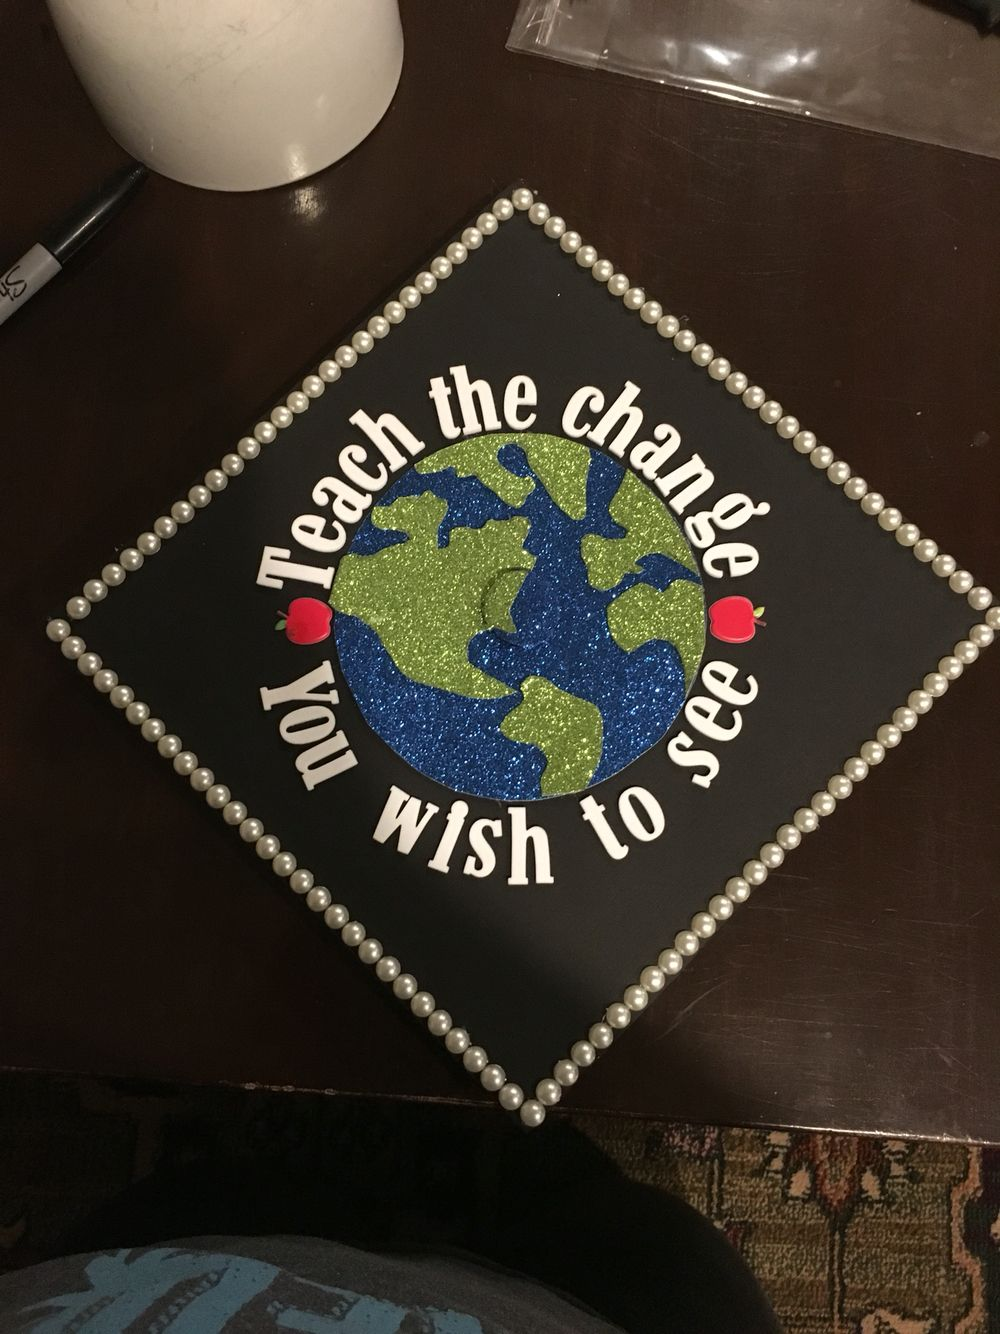 Decorating graduation cap ideas for teachers -  Decorated Graduation Caps Teacher Graduation Caps See More Https S Media Cache Ak0 Pinimg Com